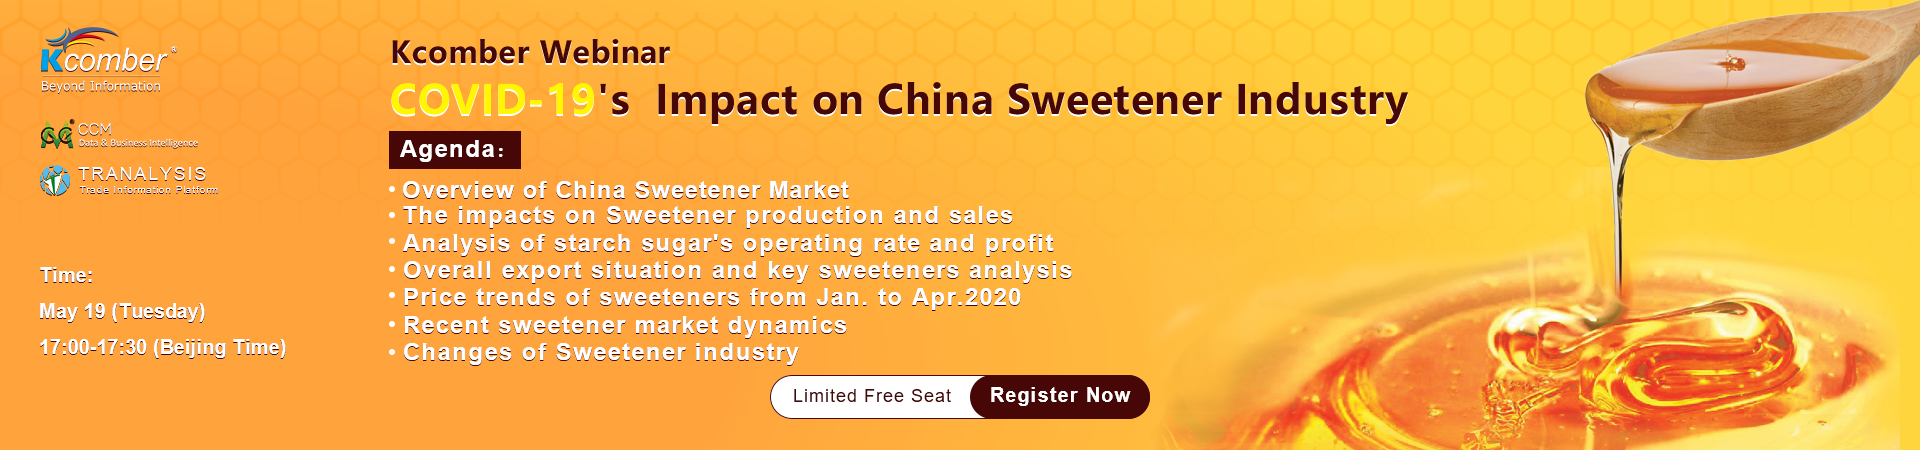 COVID-19's  Impacts on China Sweetener Industry